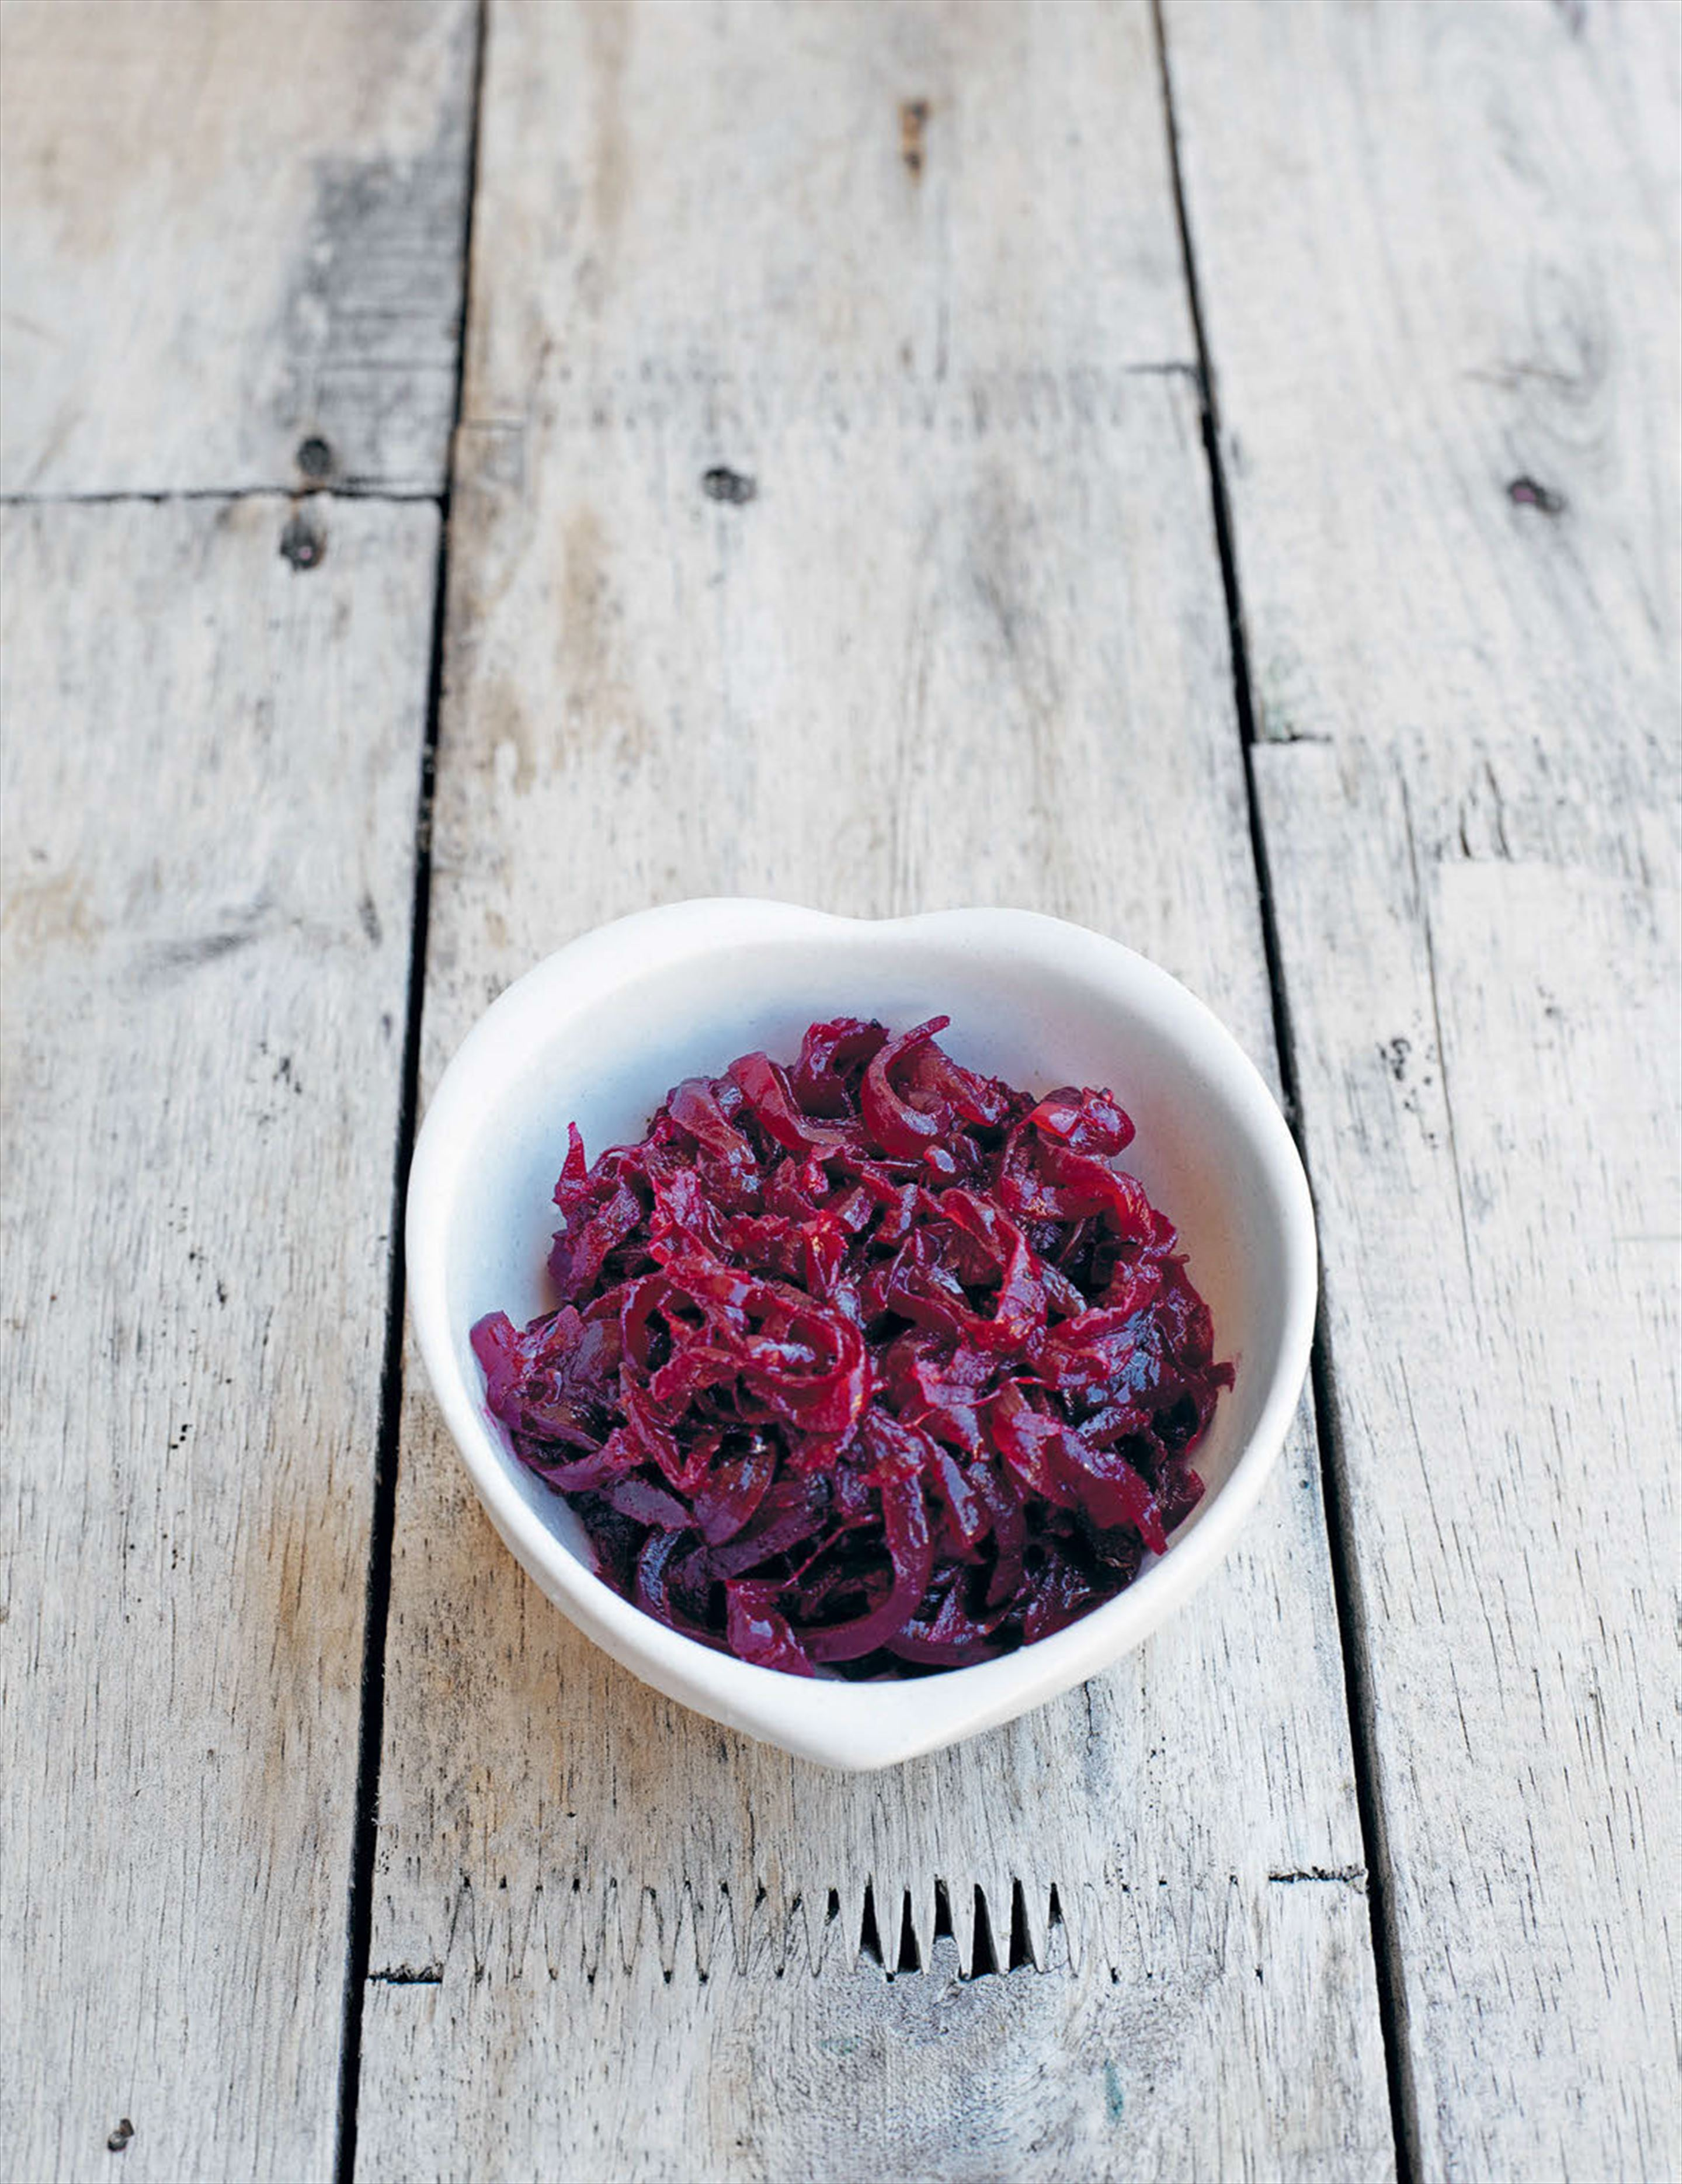 Onion and beetroot relish